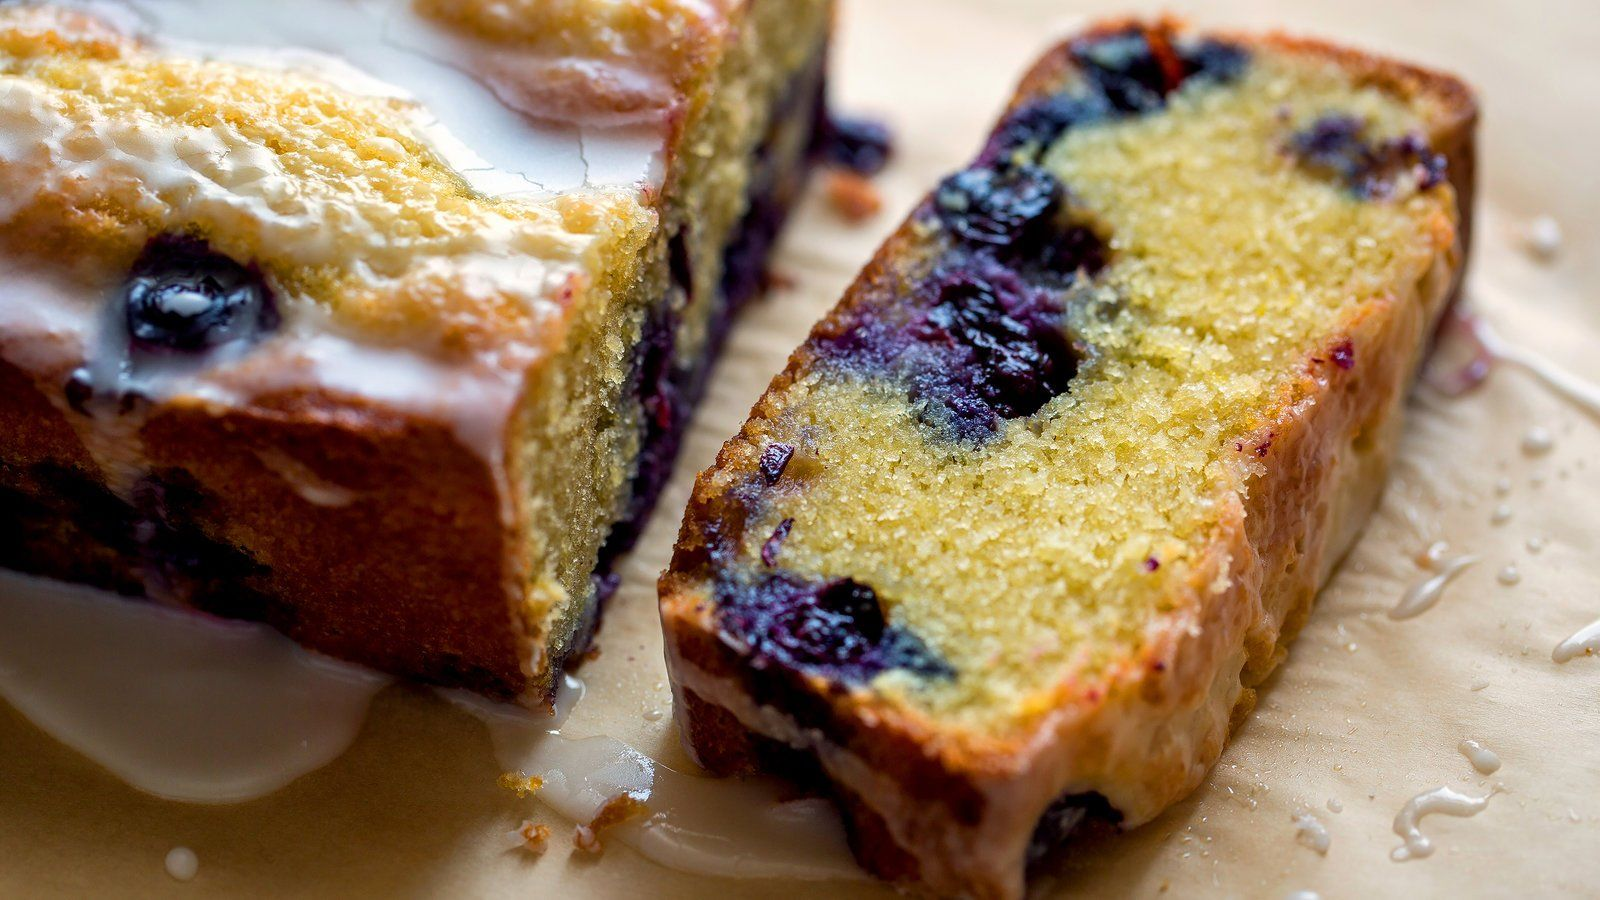 Blueberry almond and lemon cake recipe with images